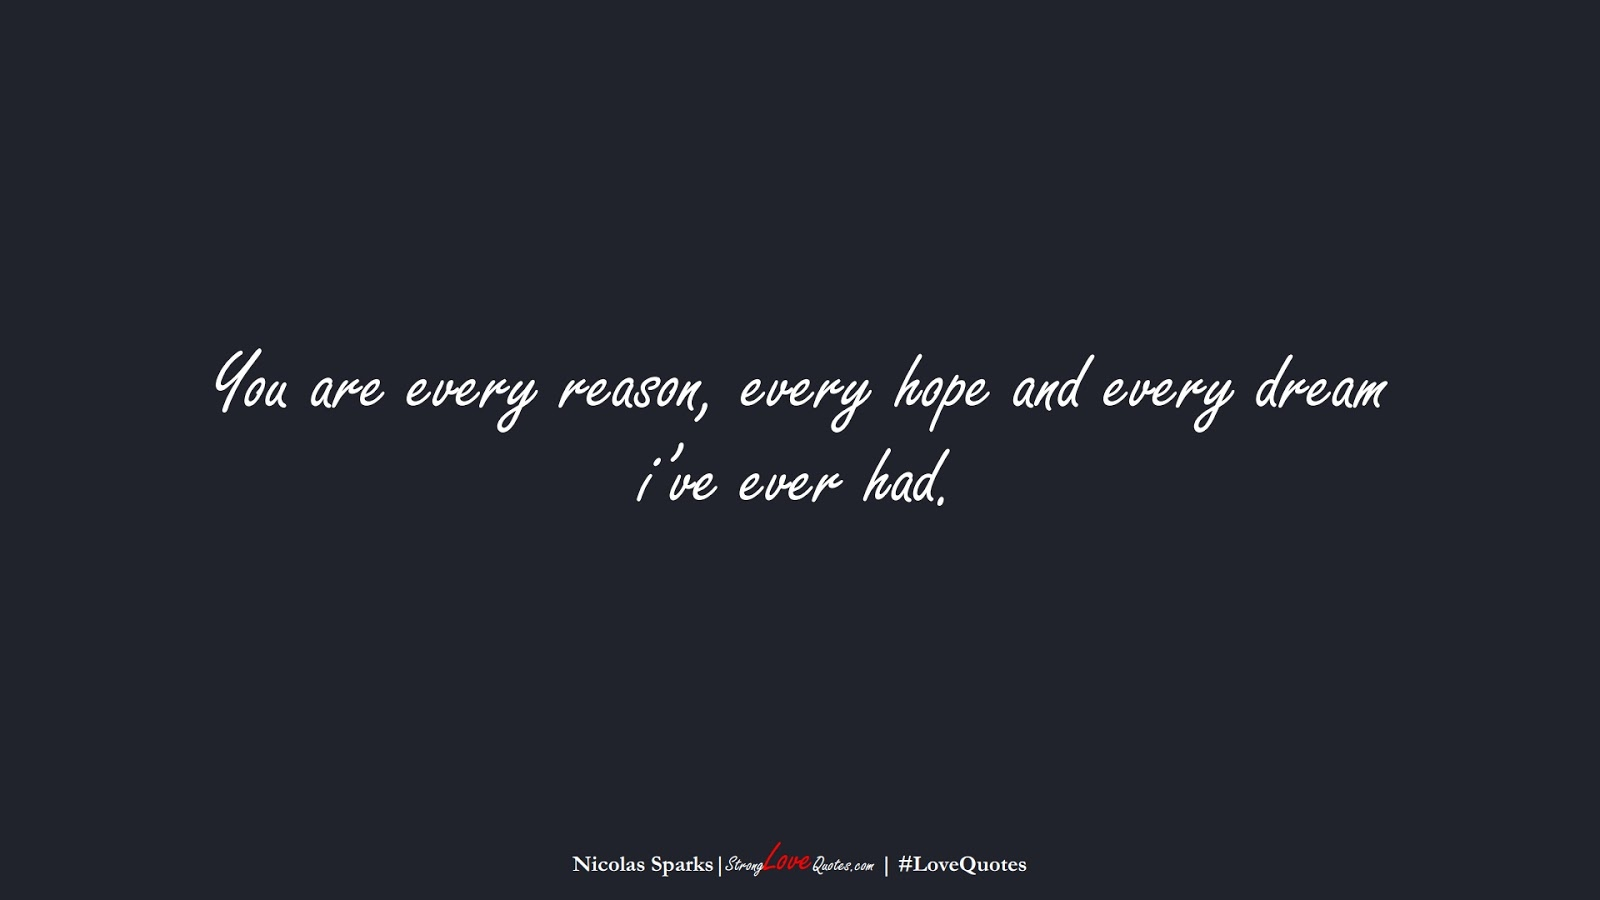 You are every reason, every hope and every dream i've ever had. (Nicolas Sparks);  #LoveQuotes